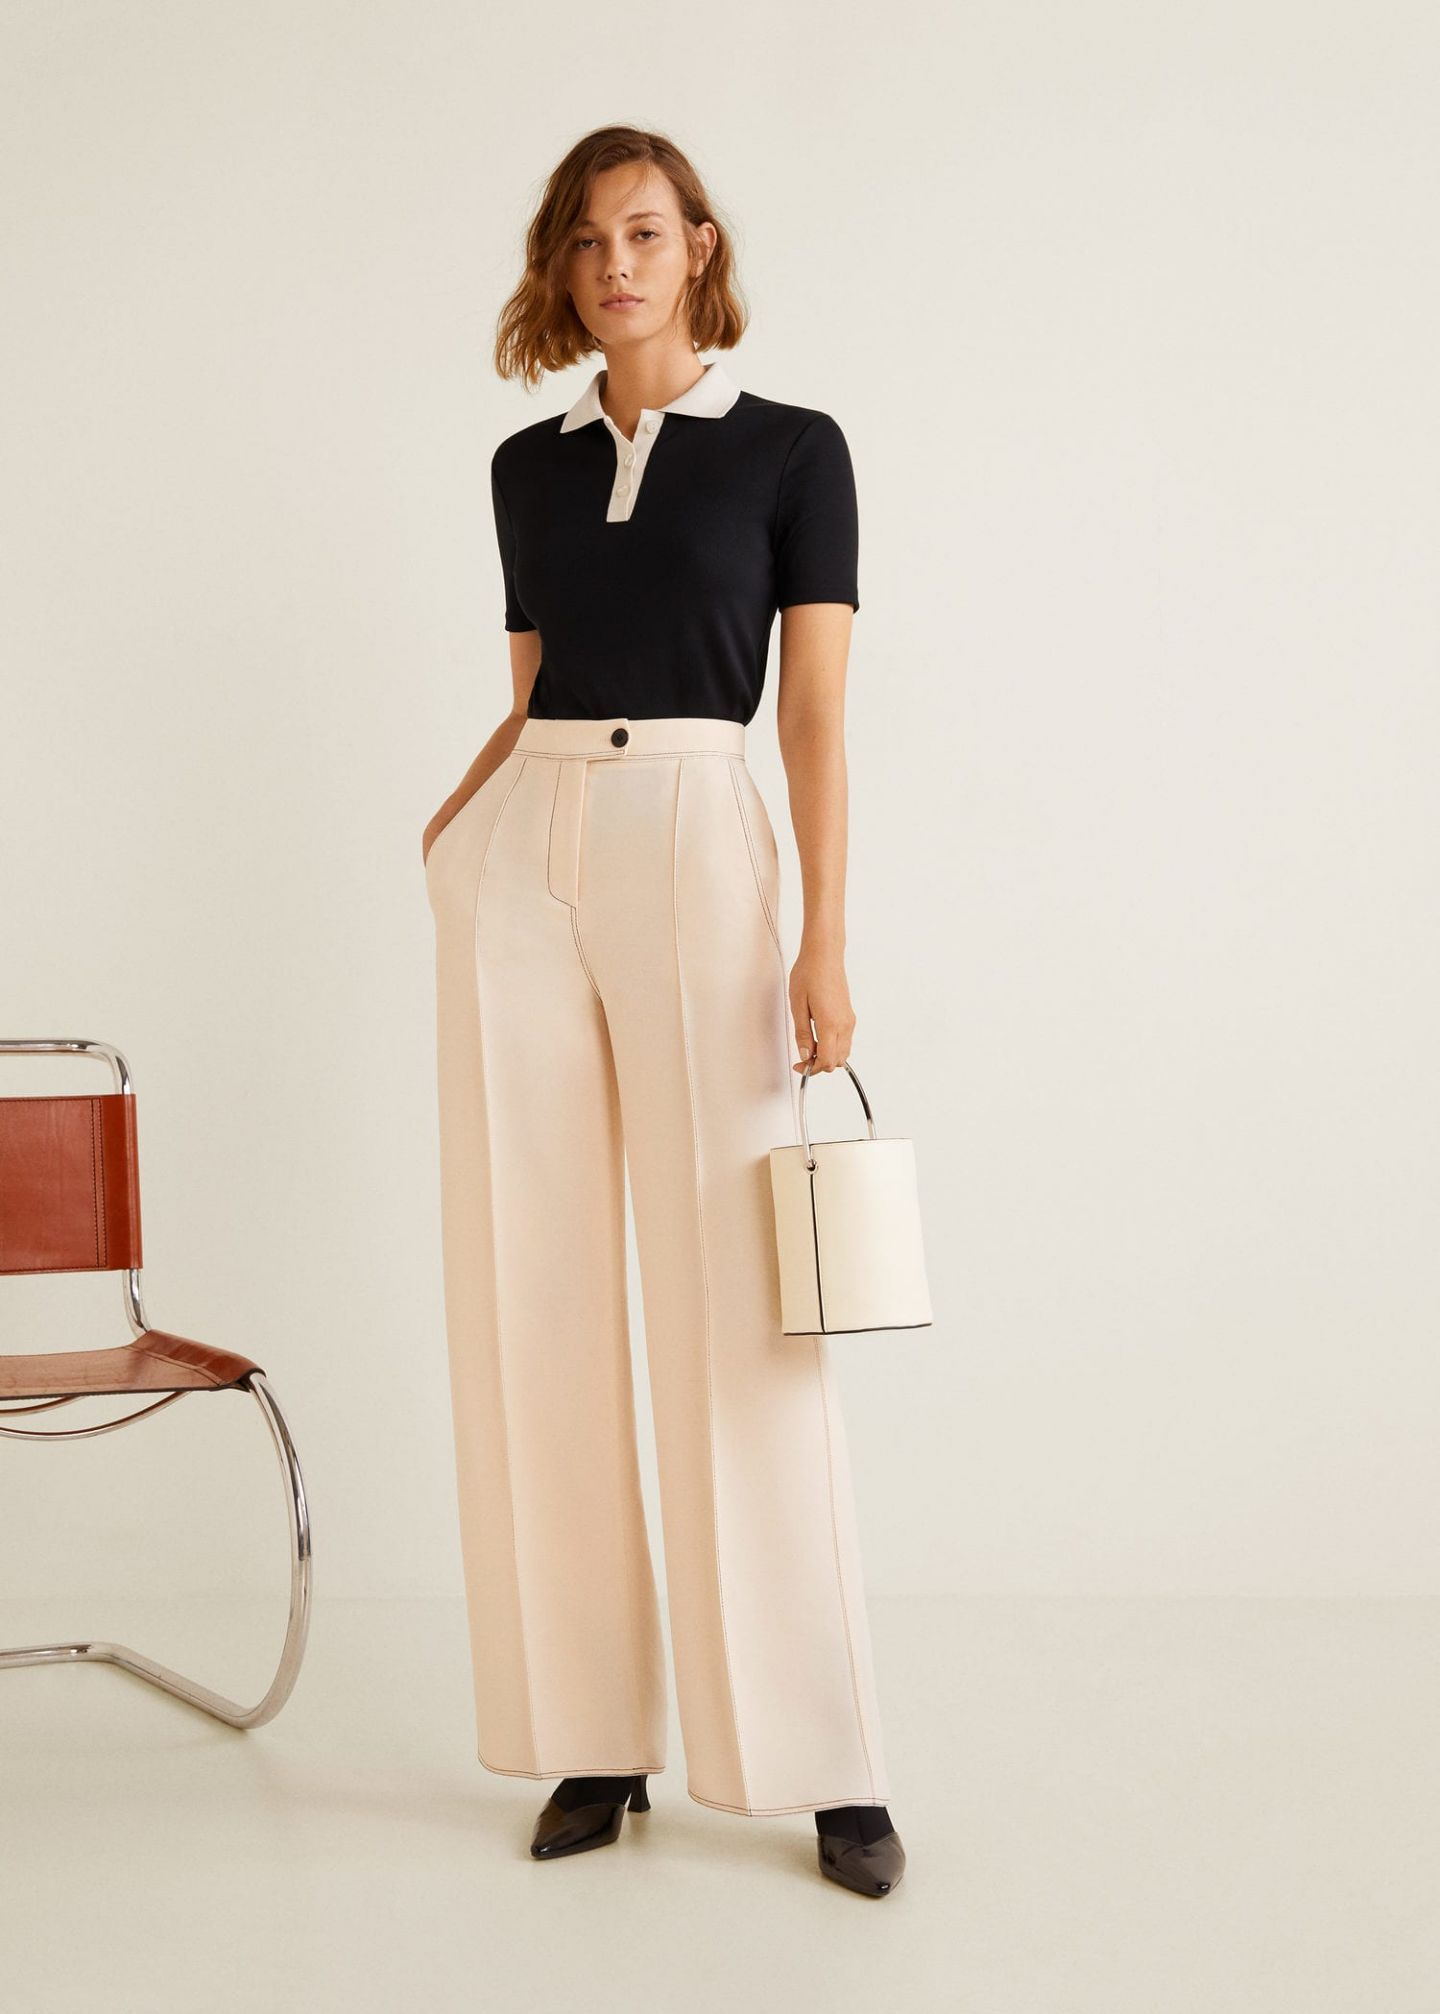 Mango S Fall Arrivals Are Like An Affordable Workwear Starter Kit